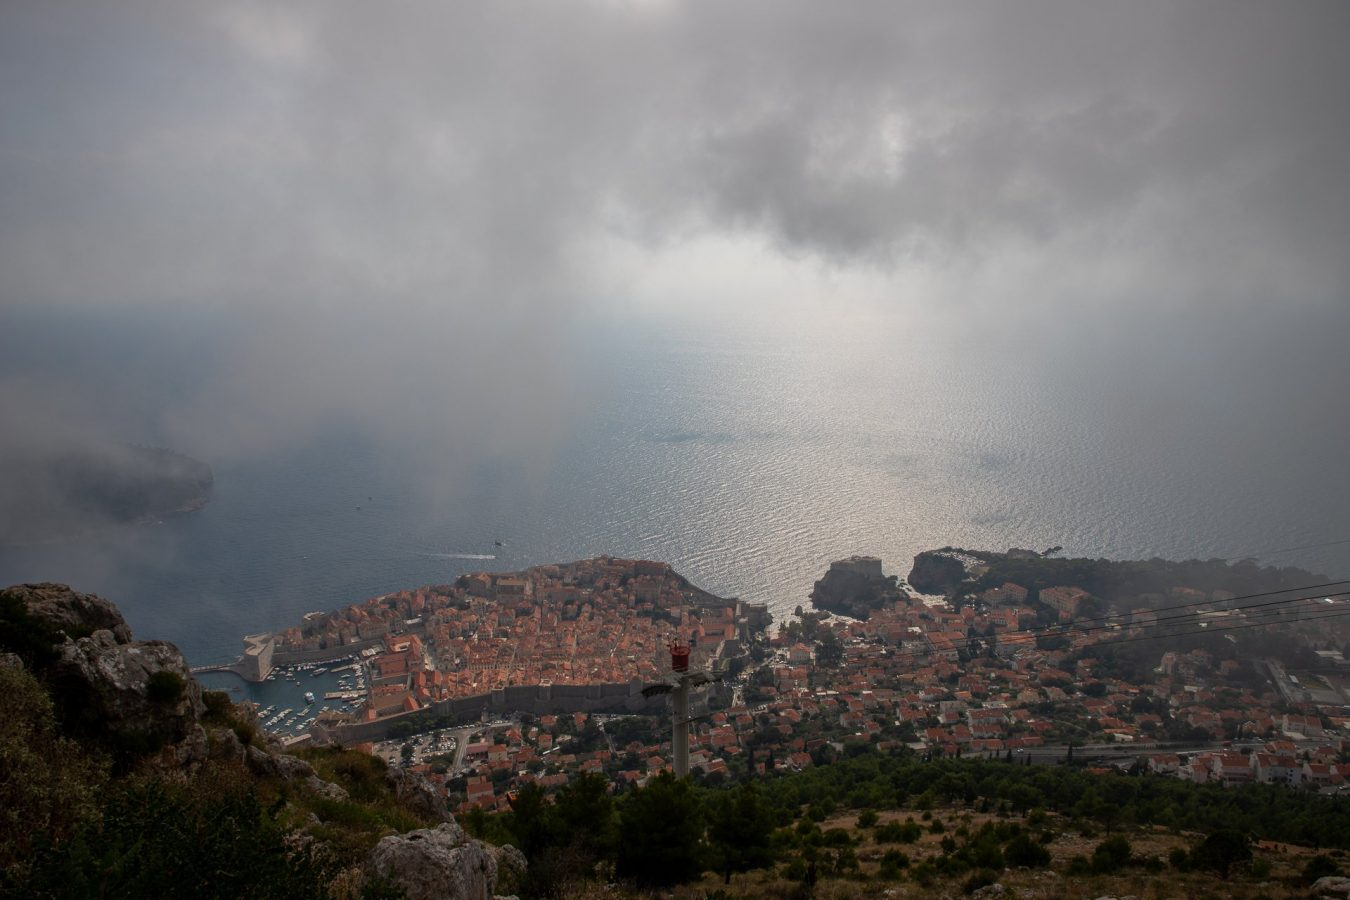 Dubrovnik from above, through the misty clouds